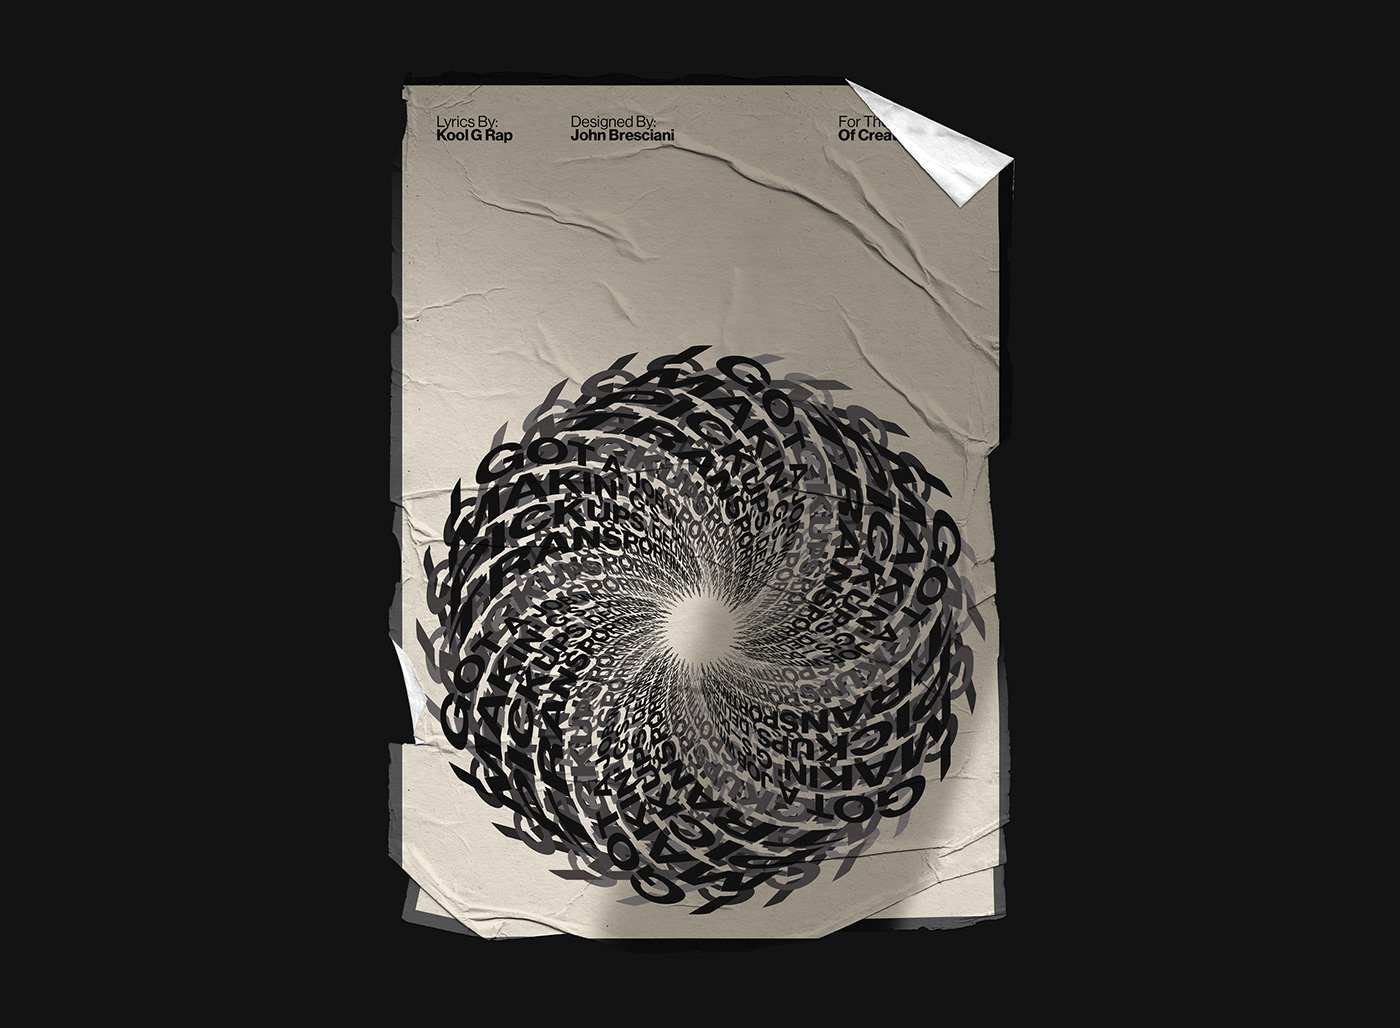 design Layout Layout Design poster posters swiss design type typo typographic typography